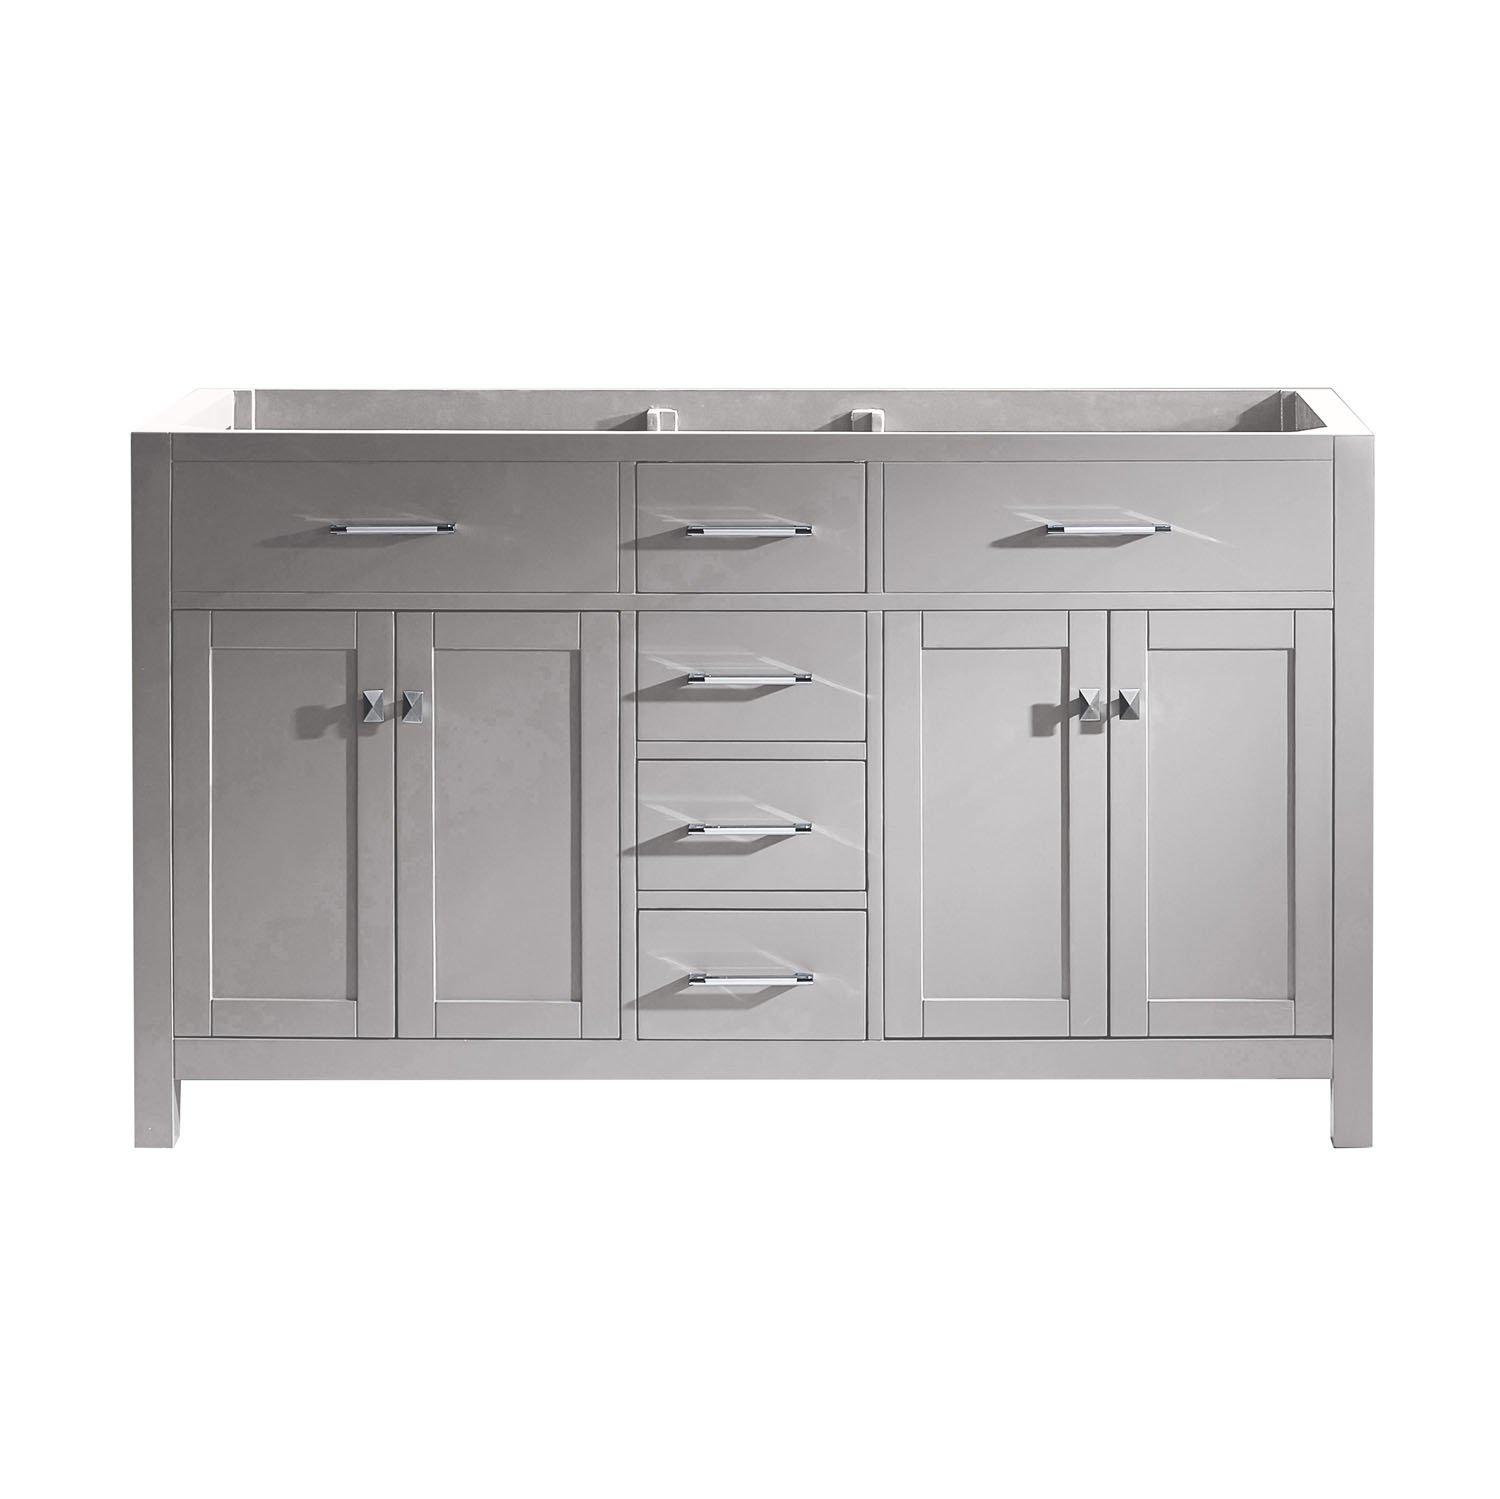 Virtu USA MD-2060-Cab-CG Caroline Cabinet, 60'', Cashmere Grey by Virtu USA